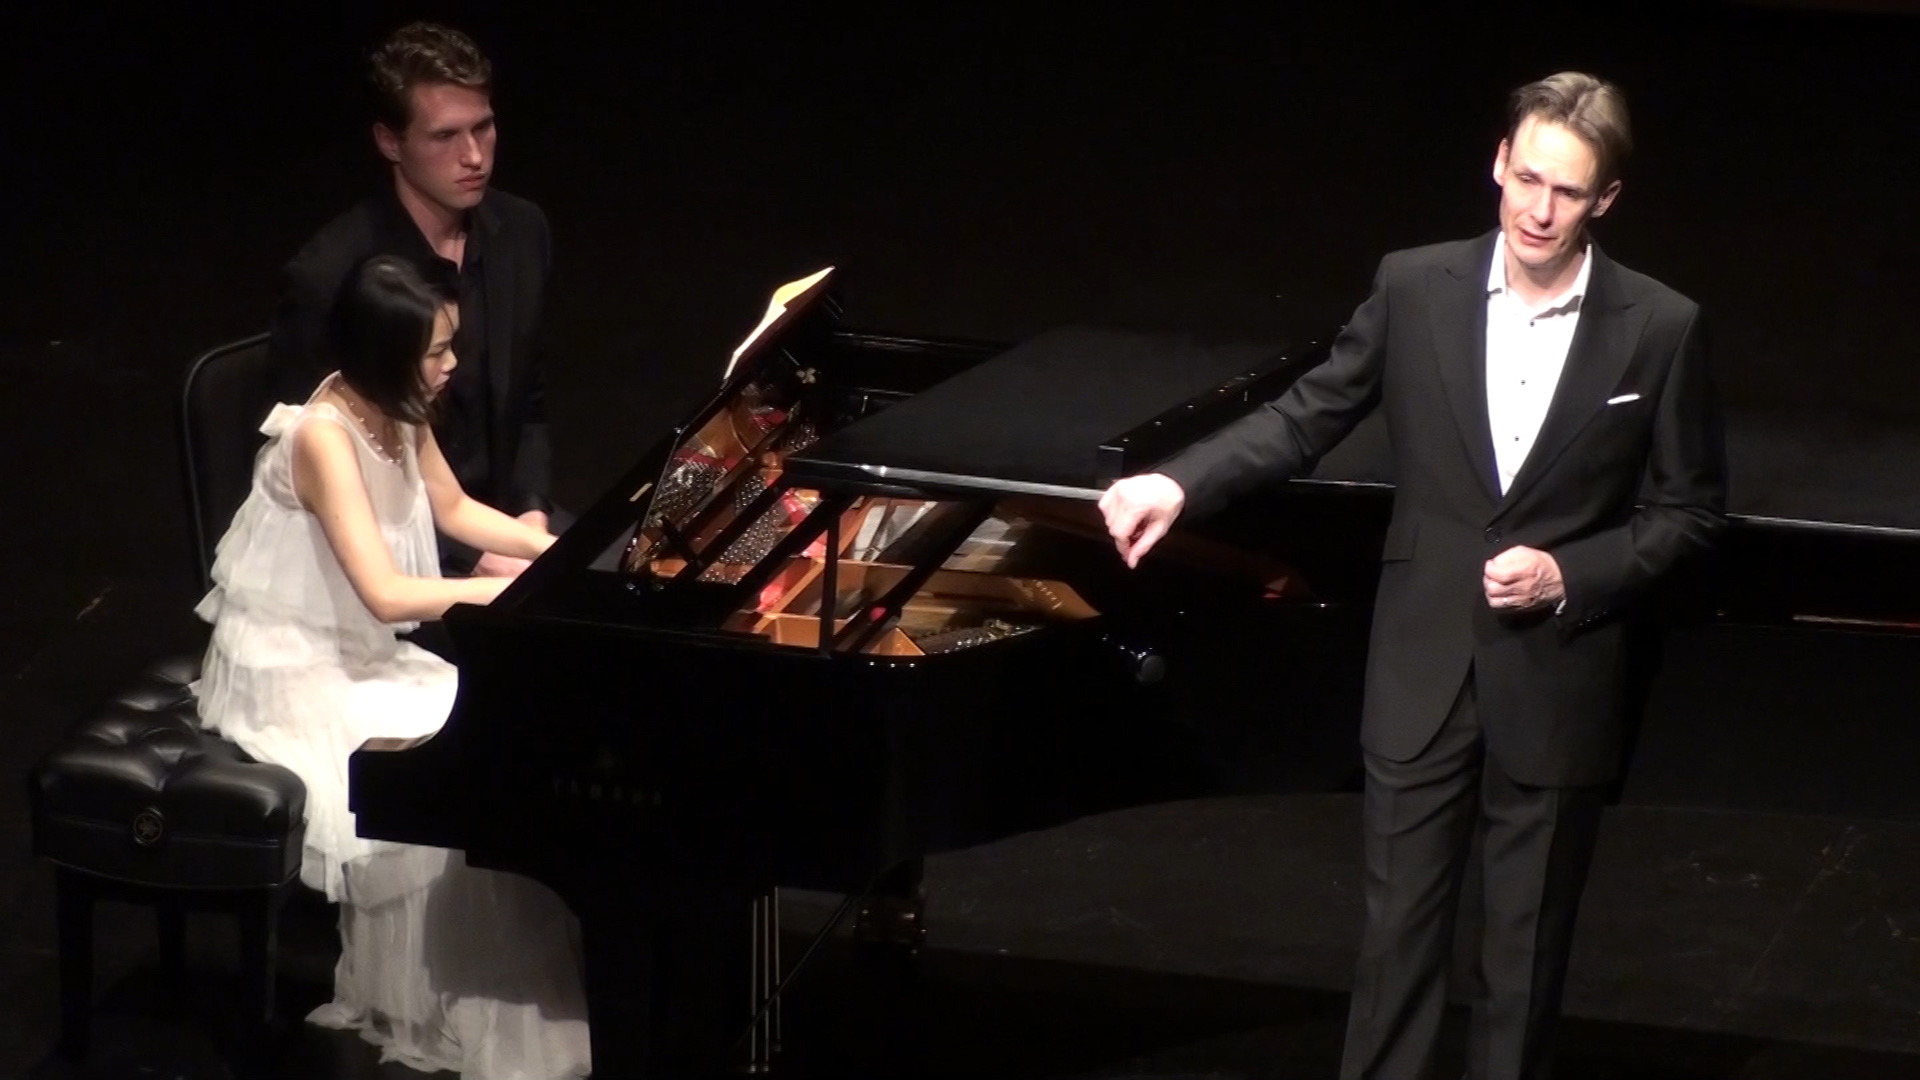 Tenor Ian Bostridge, and pianist Wenwen Du | A Promising Start for the new Dallas Opera Art Song Recital Series